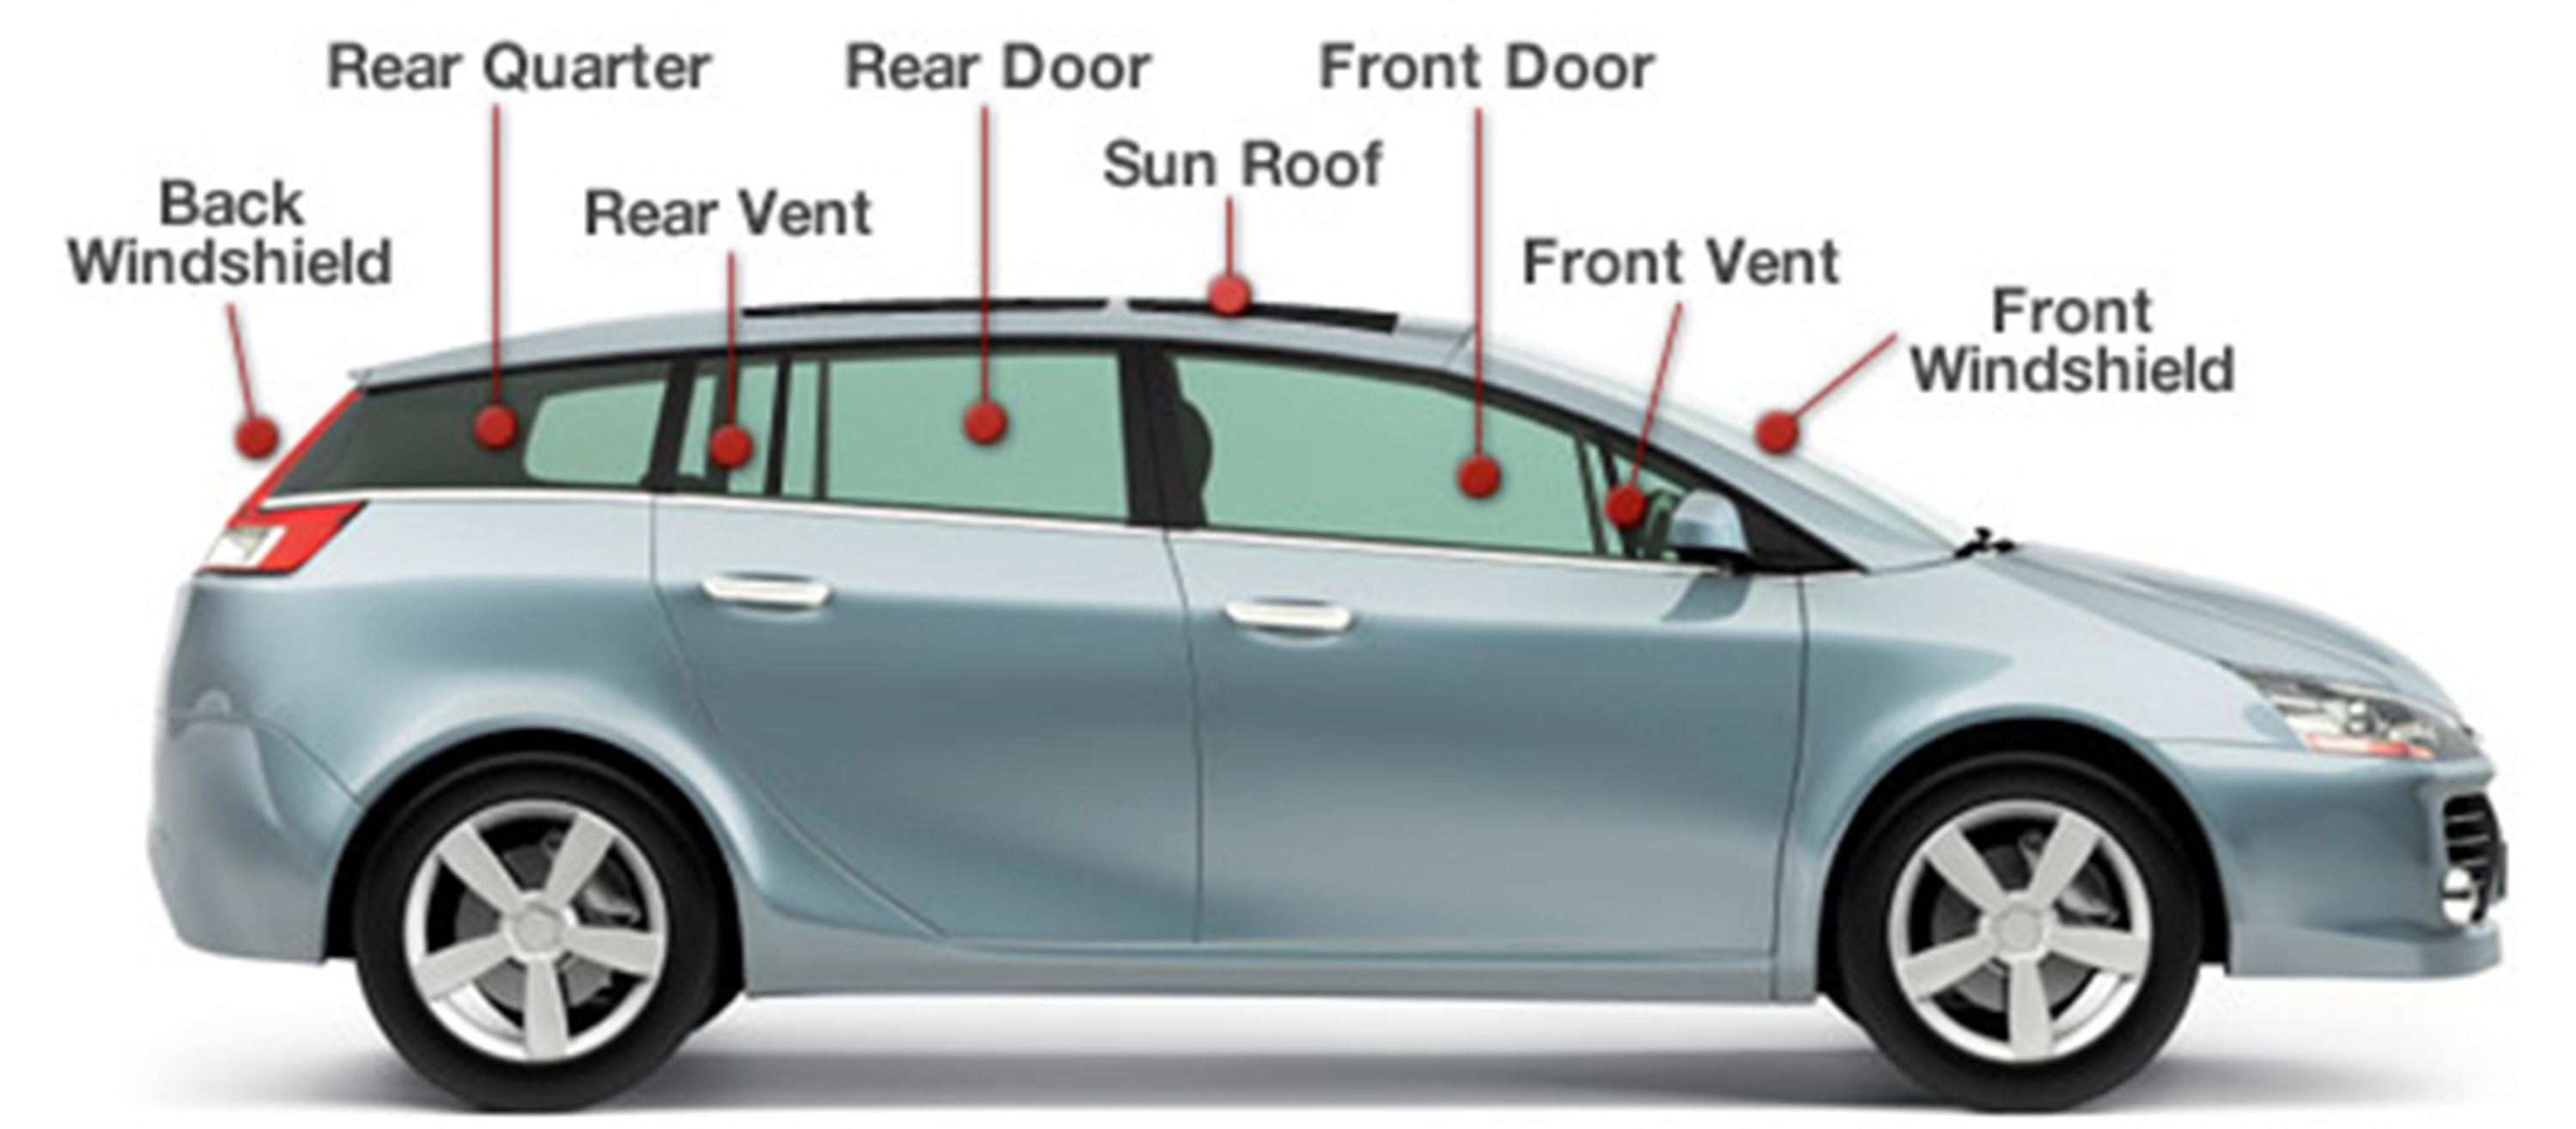 Car Rear Windshield Replacement Cost